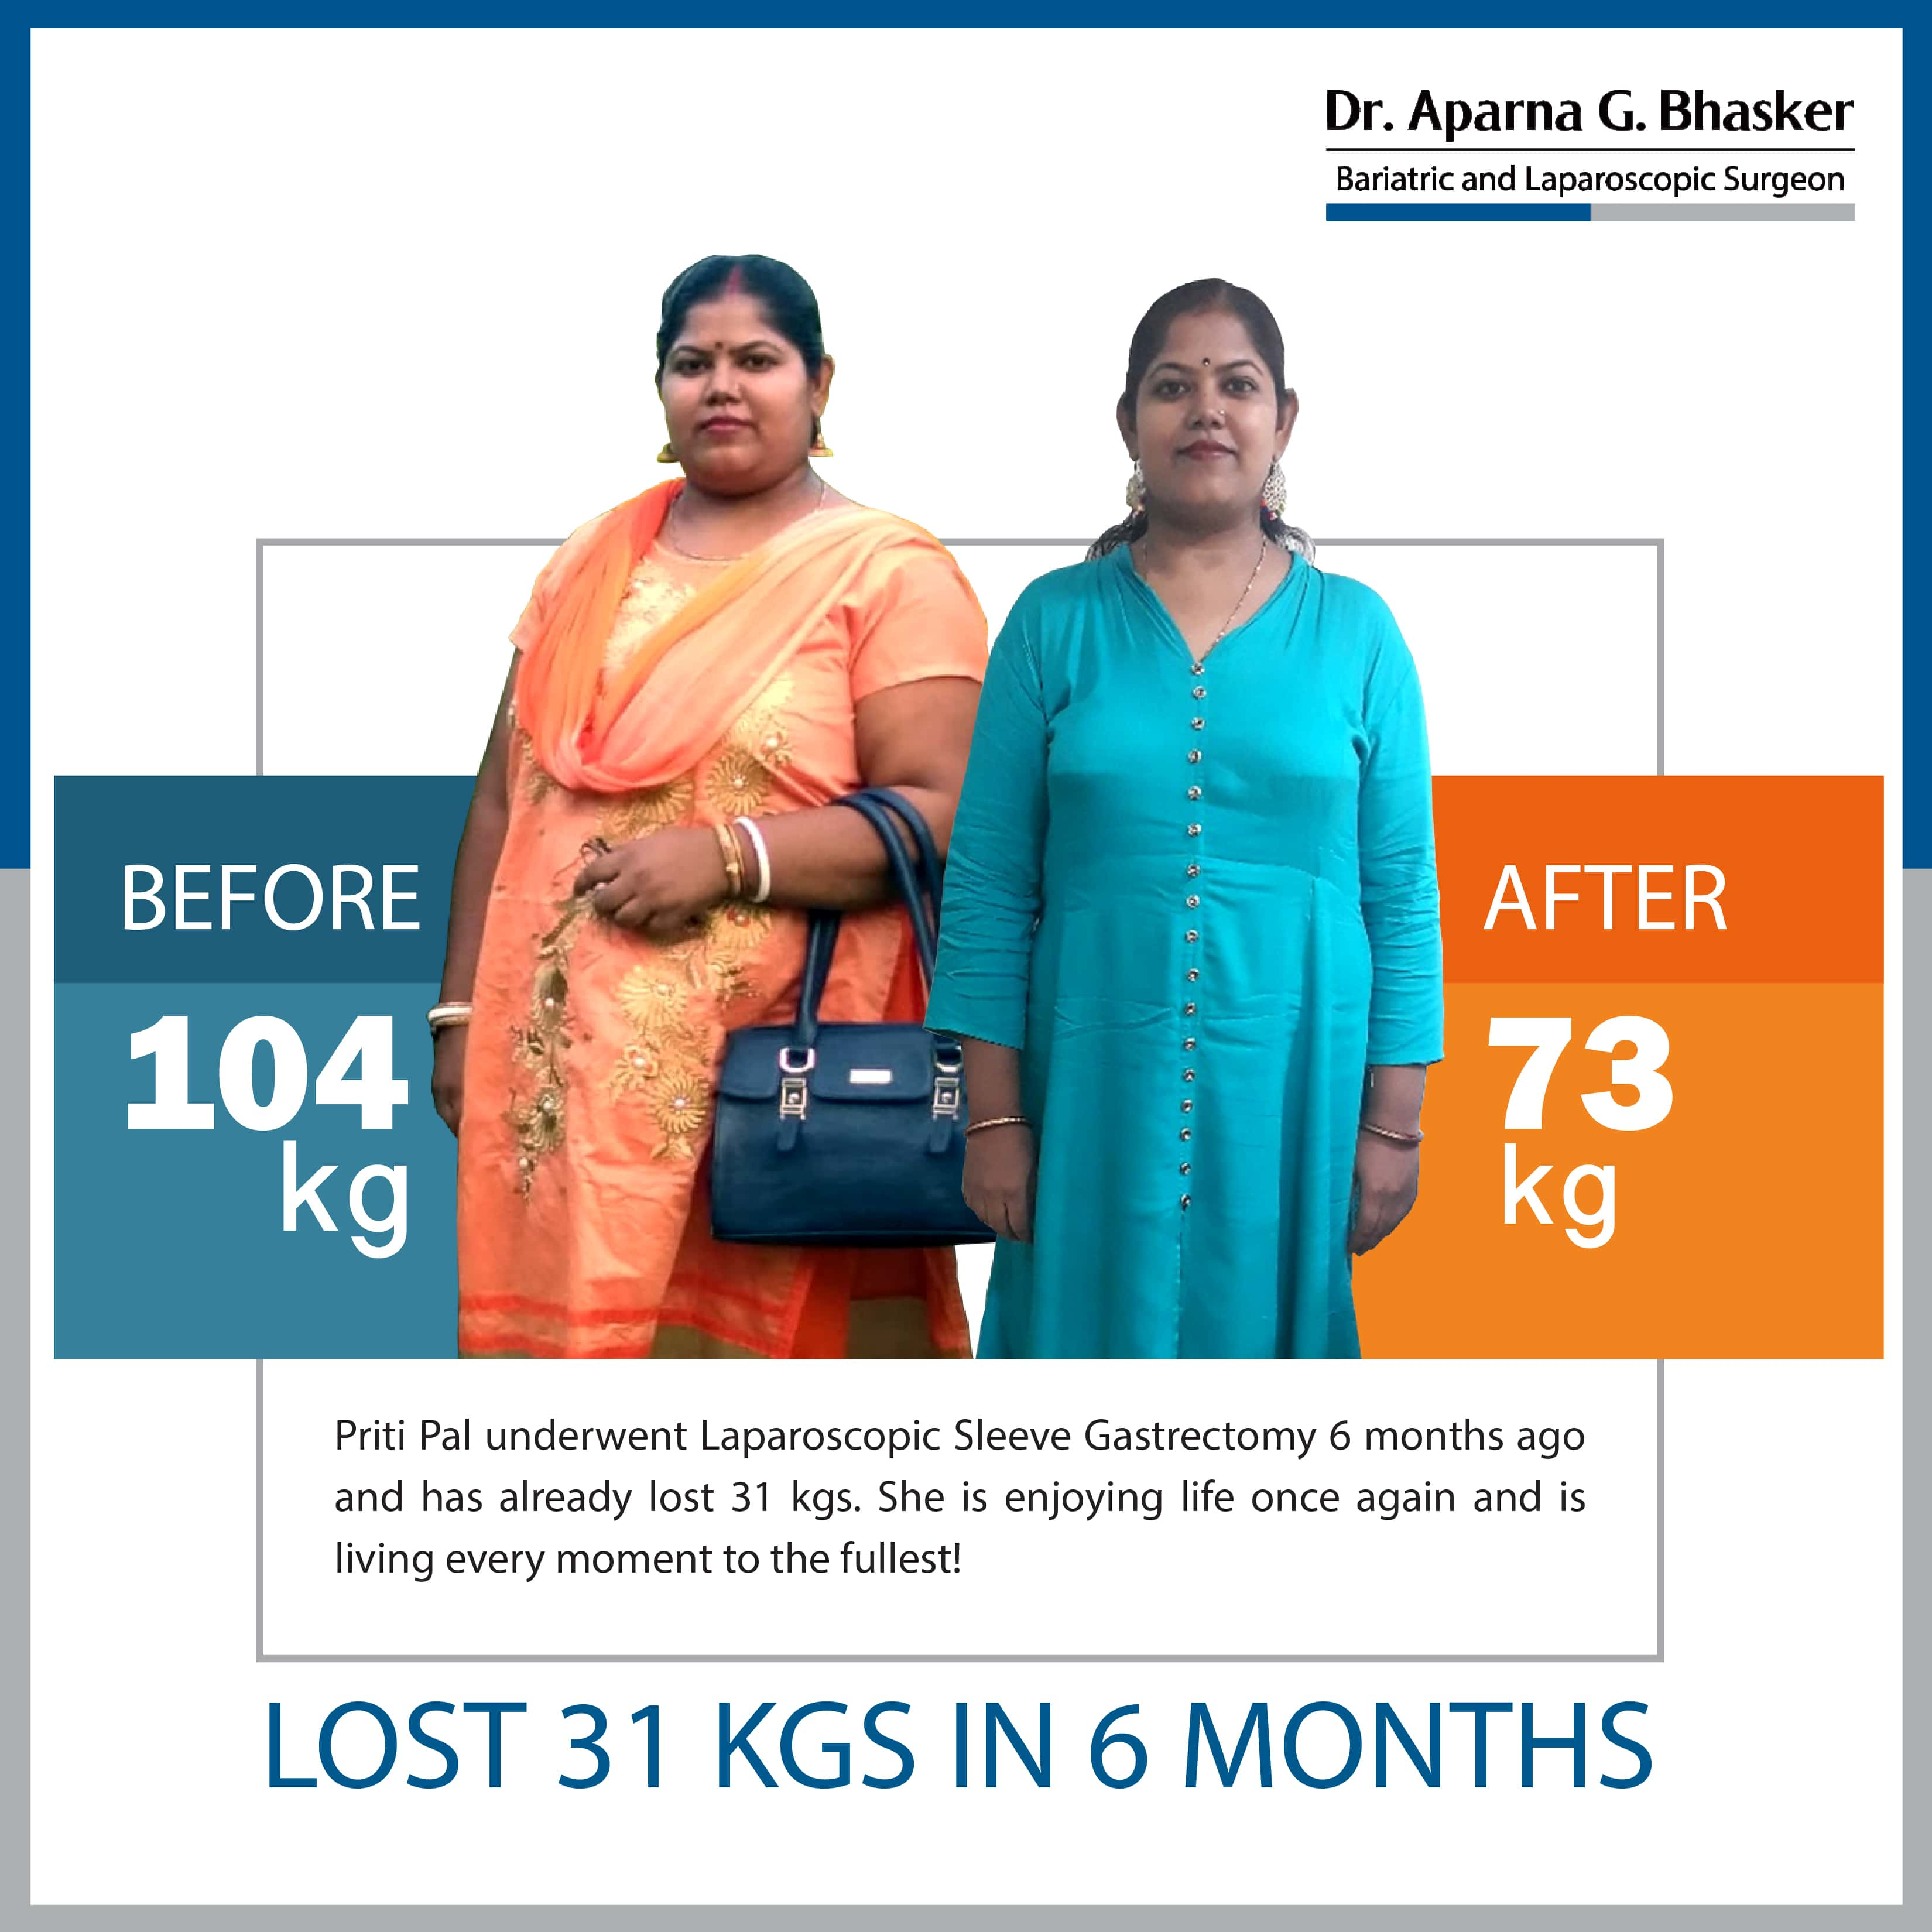 best metabolic bariatric surgery for diabetes weight loss surgery cost in mumbai india before after photos (5)